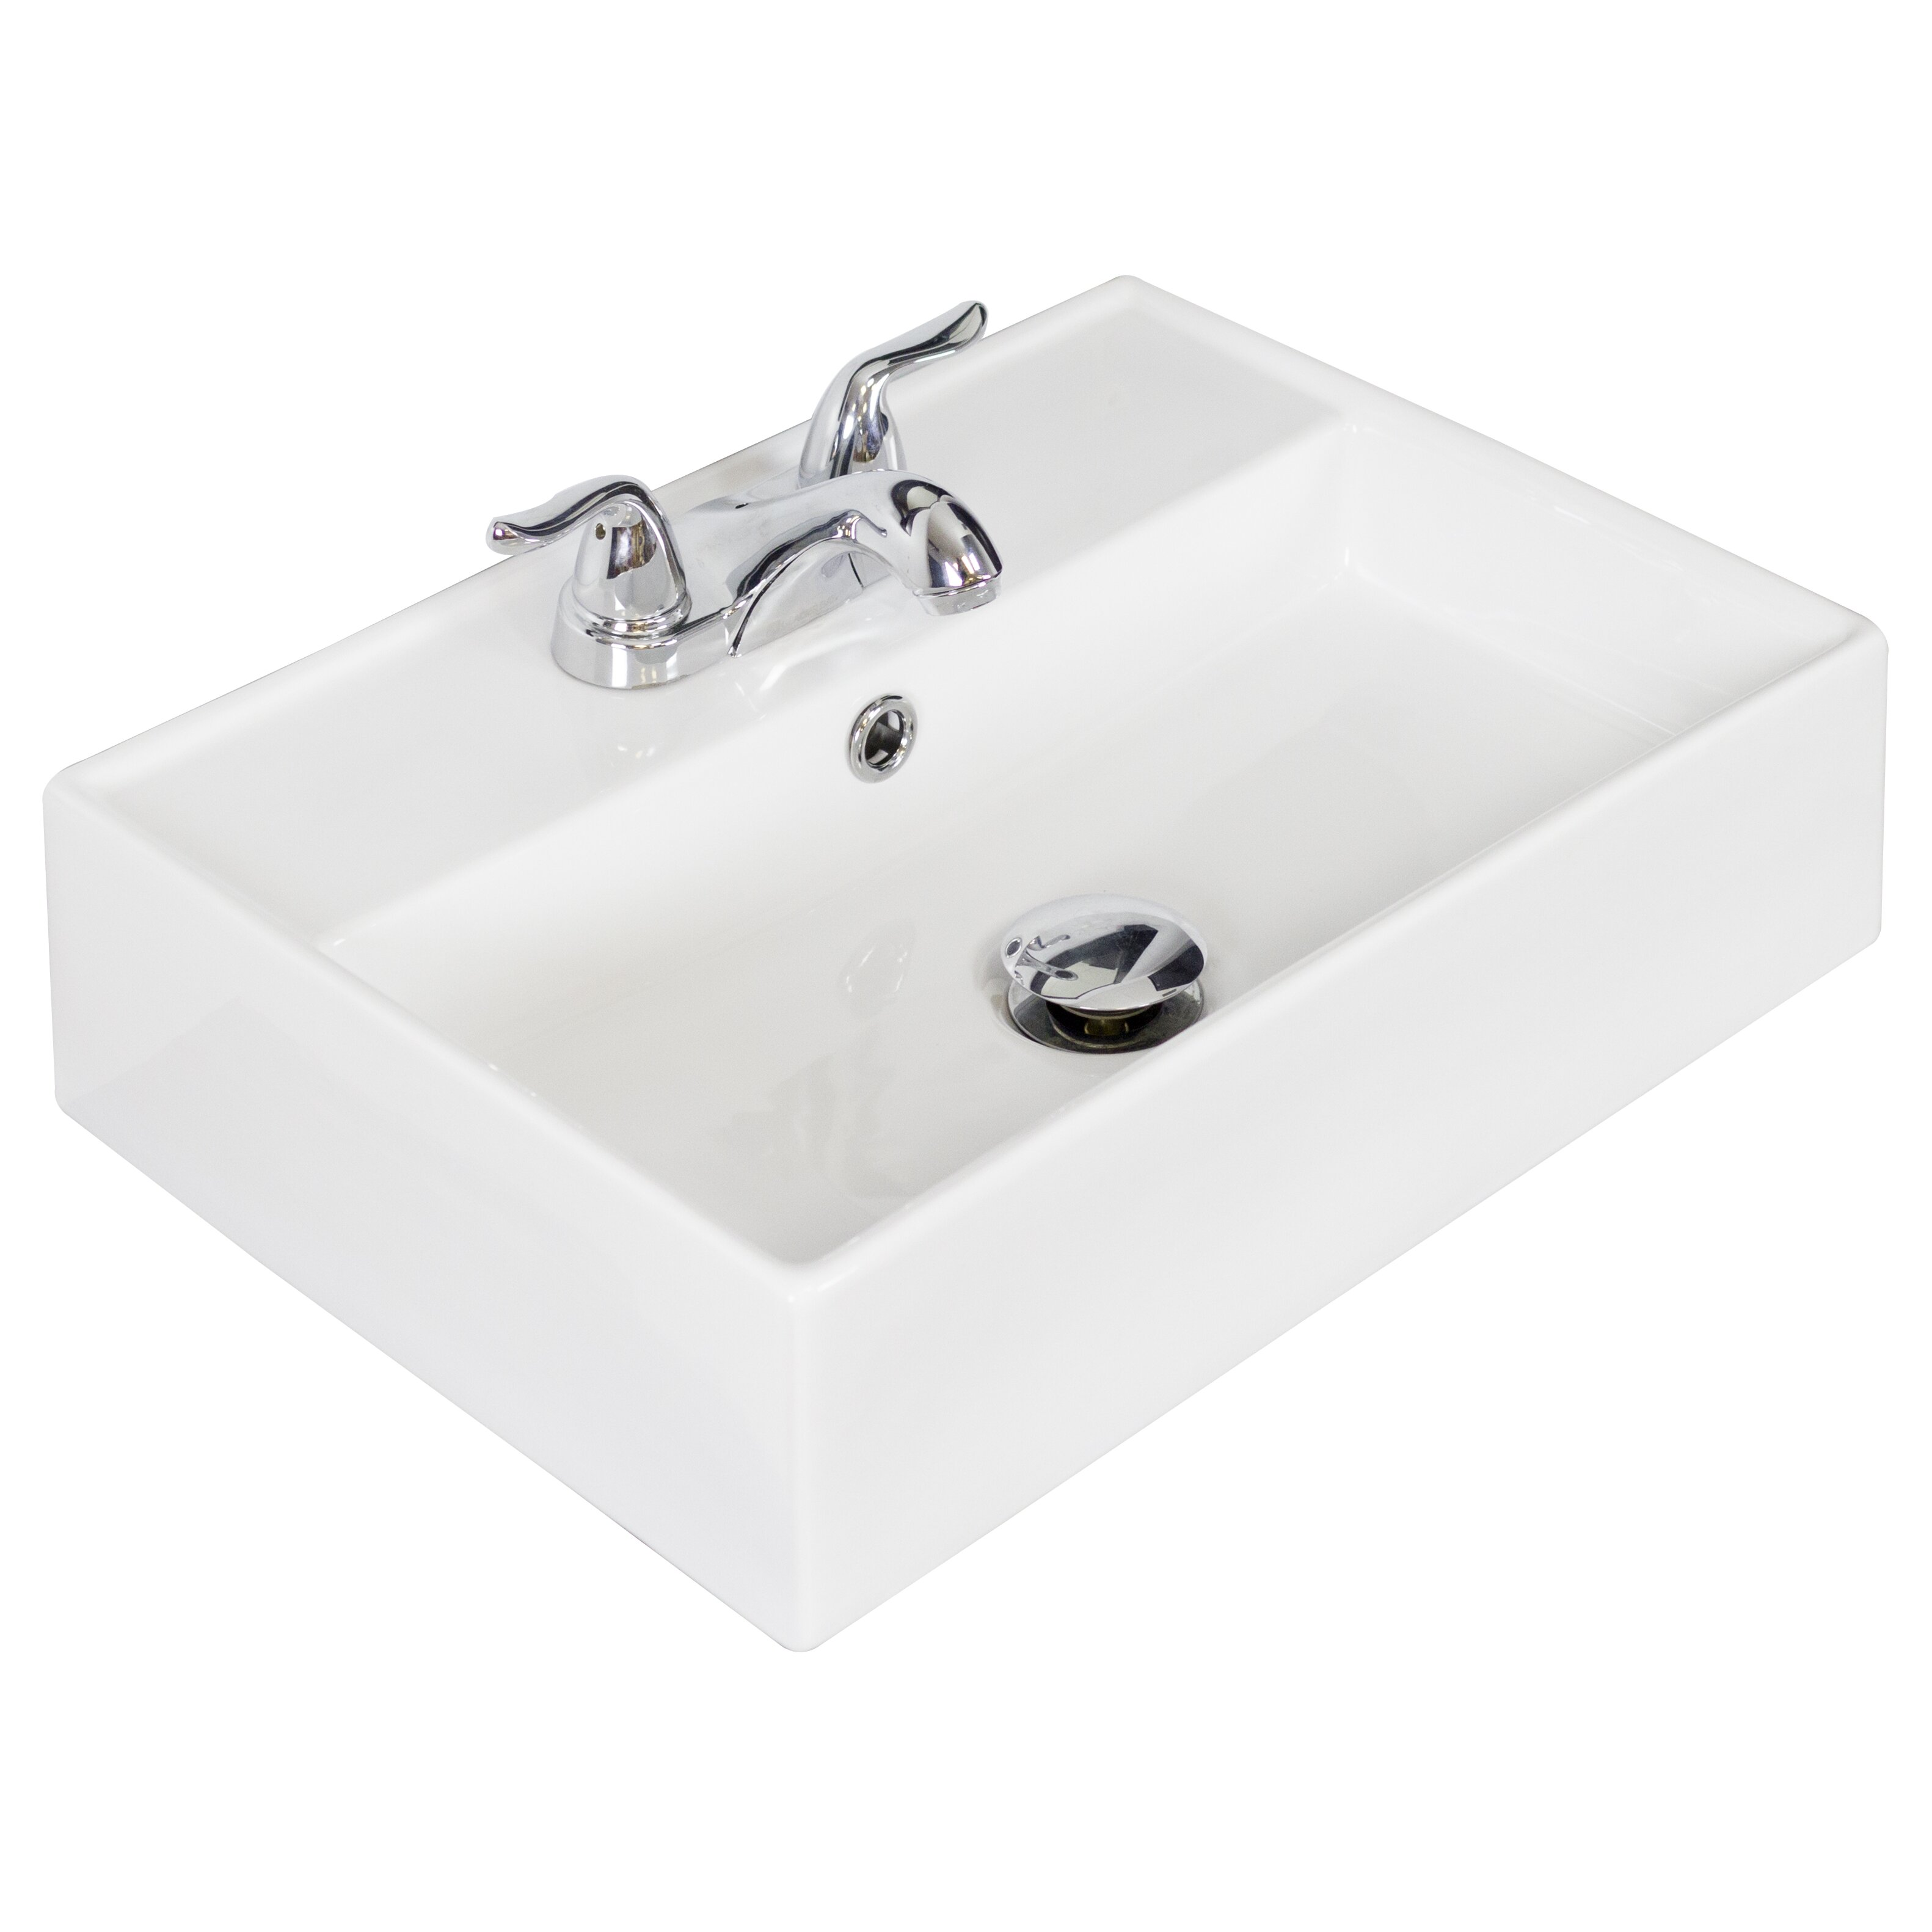 Https Www Wayfair Com American Imaginations Wall Mounted Rectangle Bathroom Sink Amim3066 Html